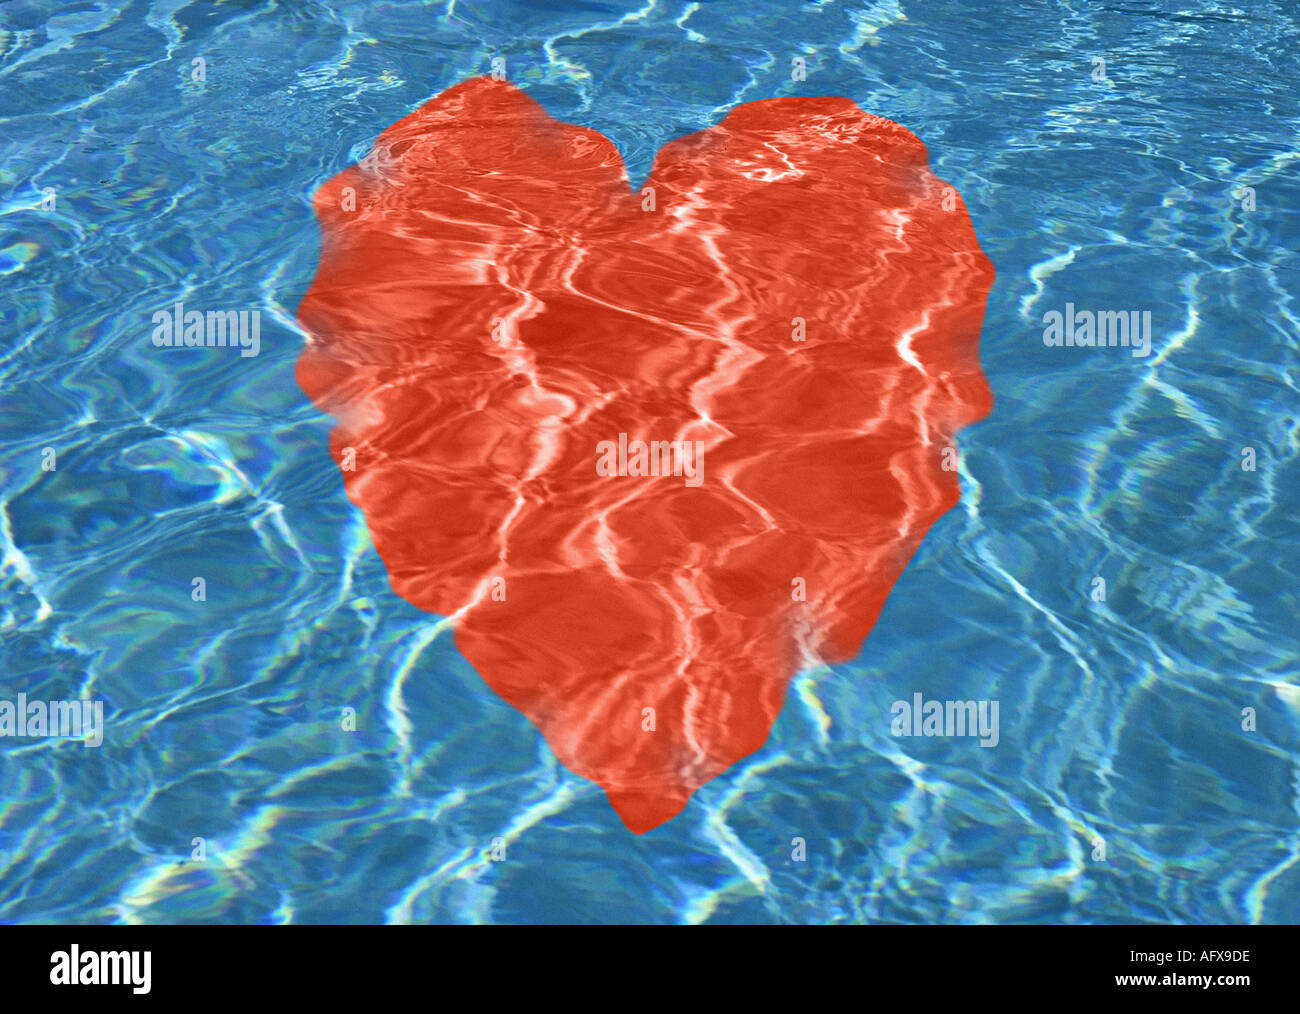 Coeur rouge sous l'eau Photo Stock